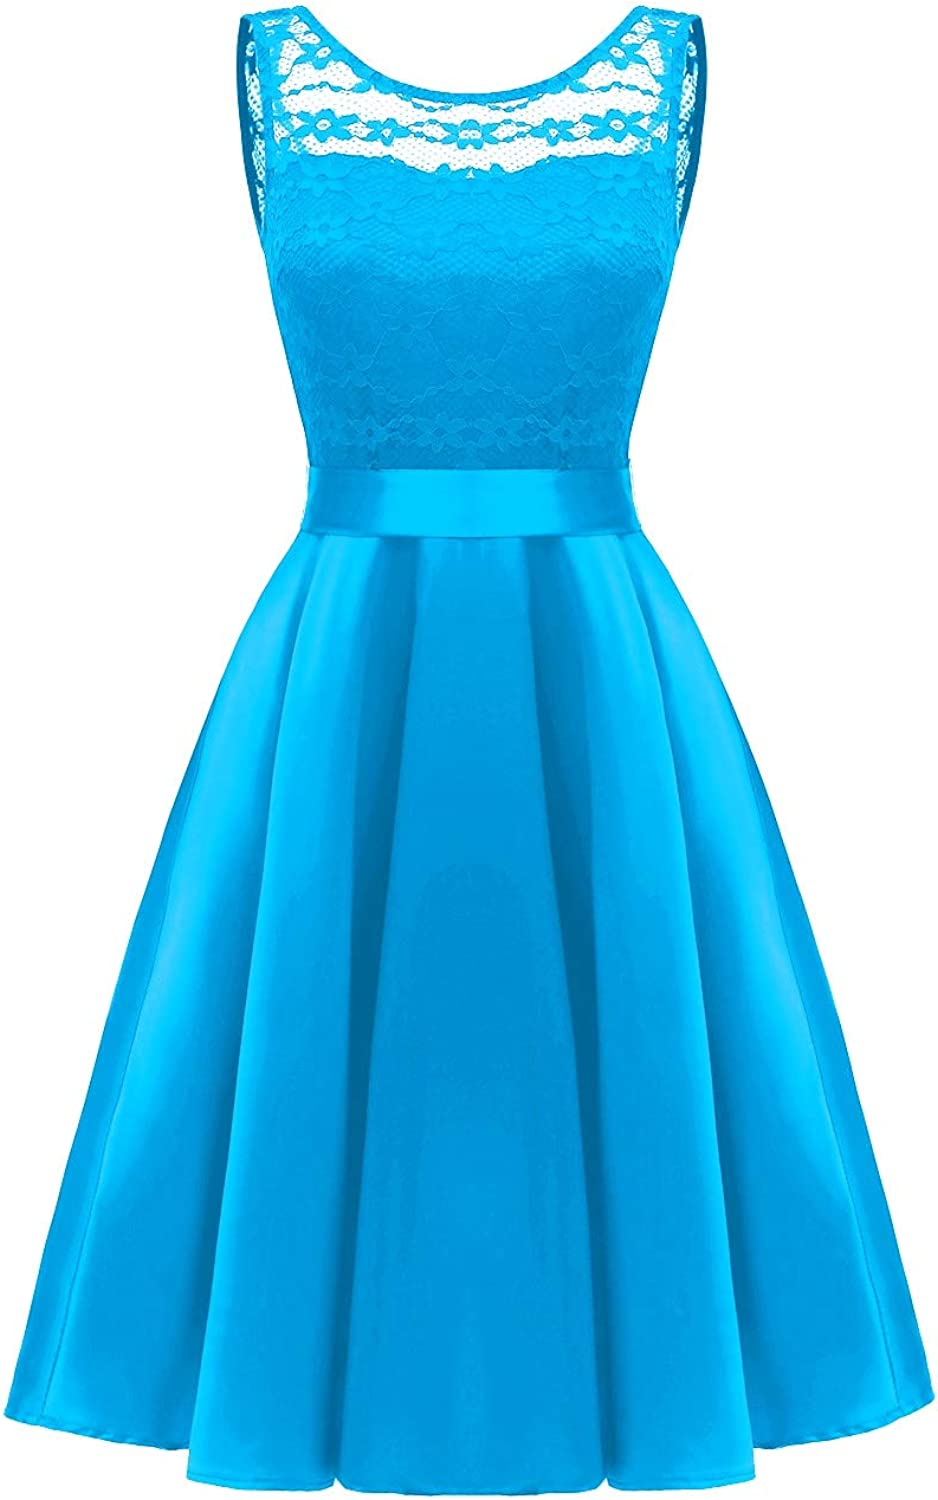 Bess Bridal Women's Lace V Back Short Prom Homecoming Party Dress with Ribbon